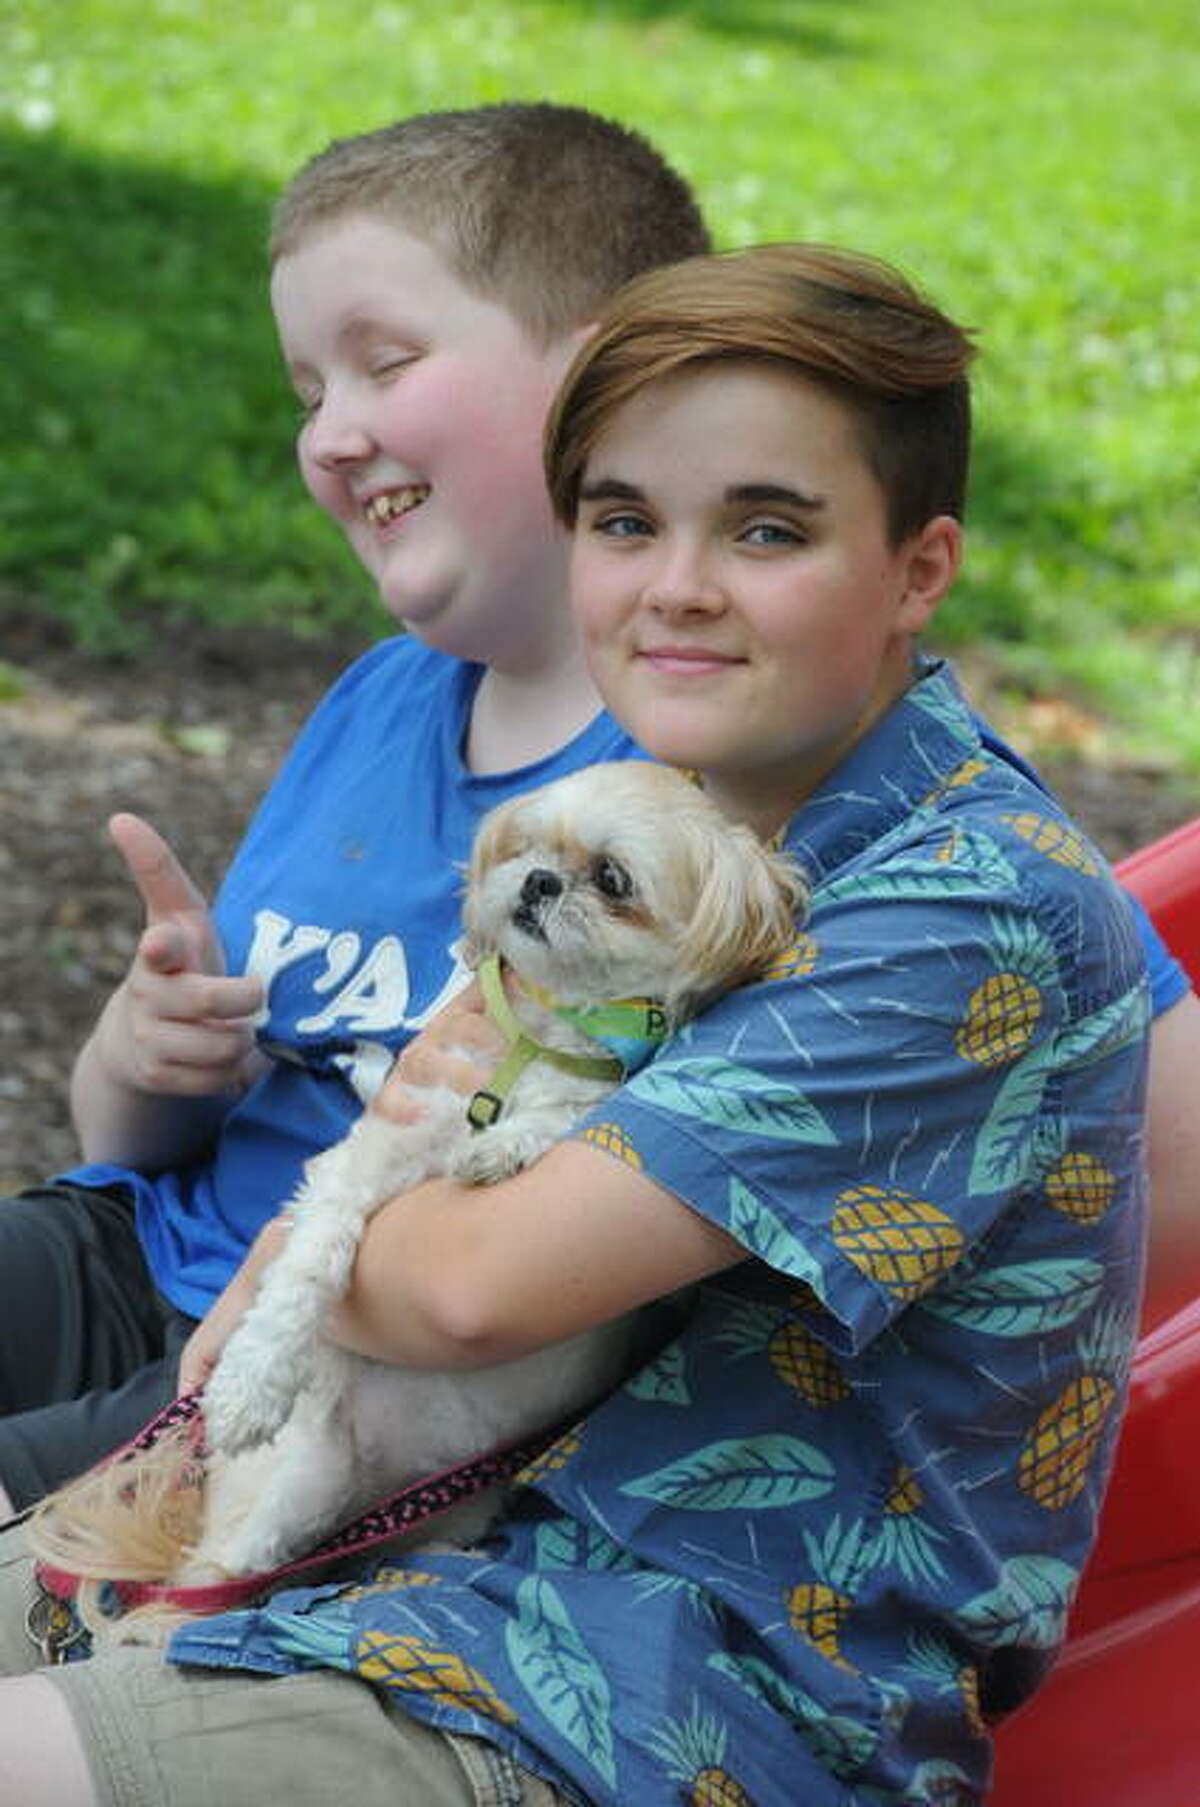 Deidrick and Esmond Hicks take a Pawty break Saturday with Esmond's dog Kyky. The first-ever event in the Roxana Park raised funds for L&L Animal Warriors.